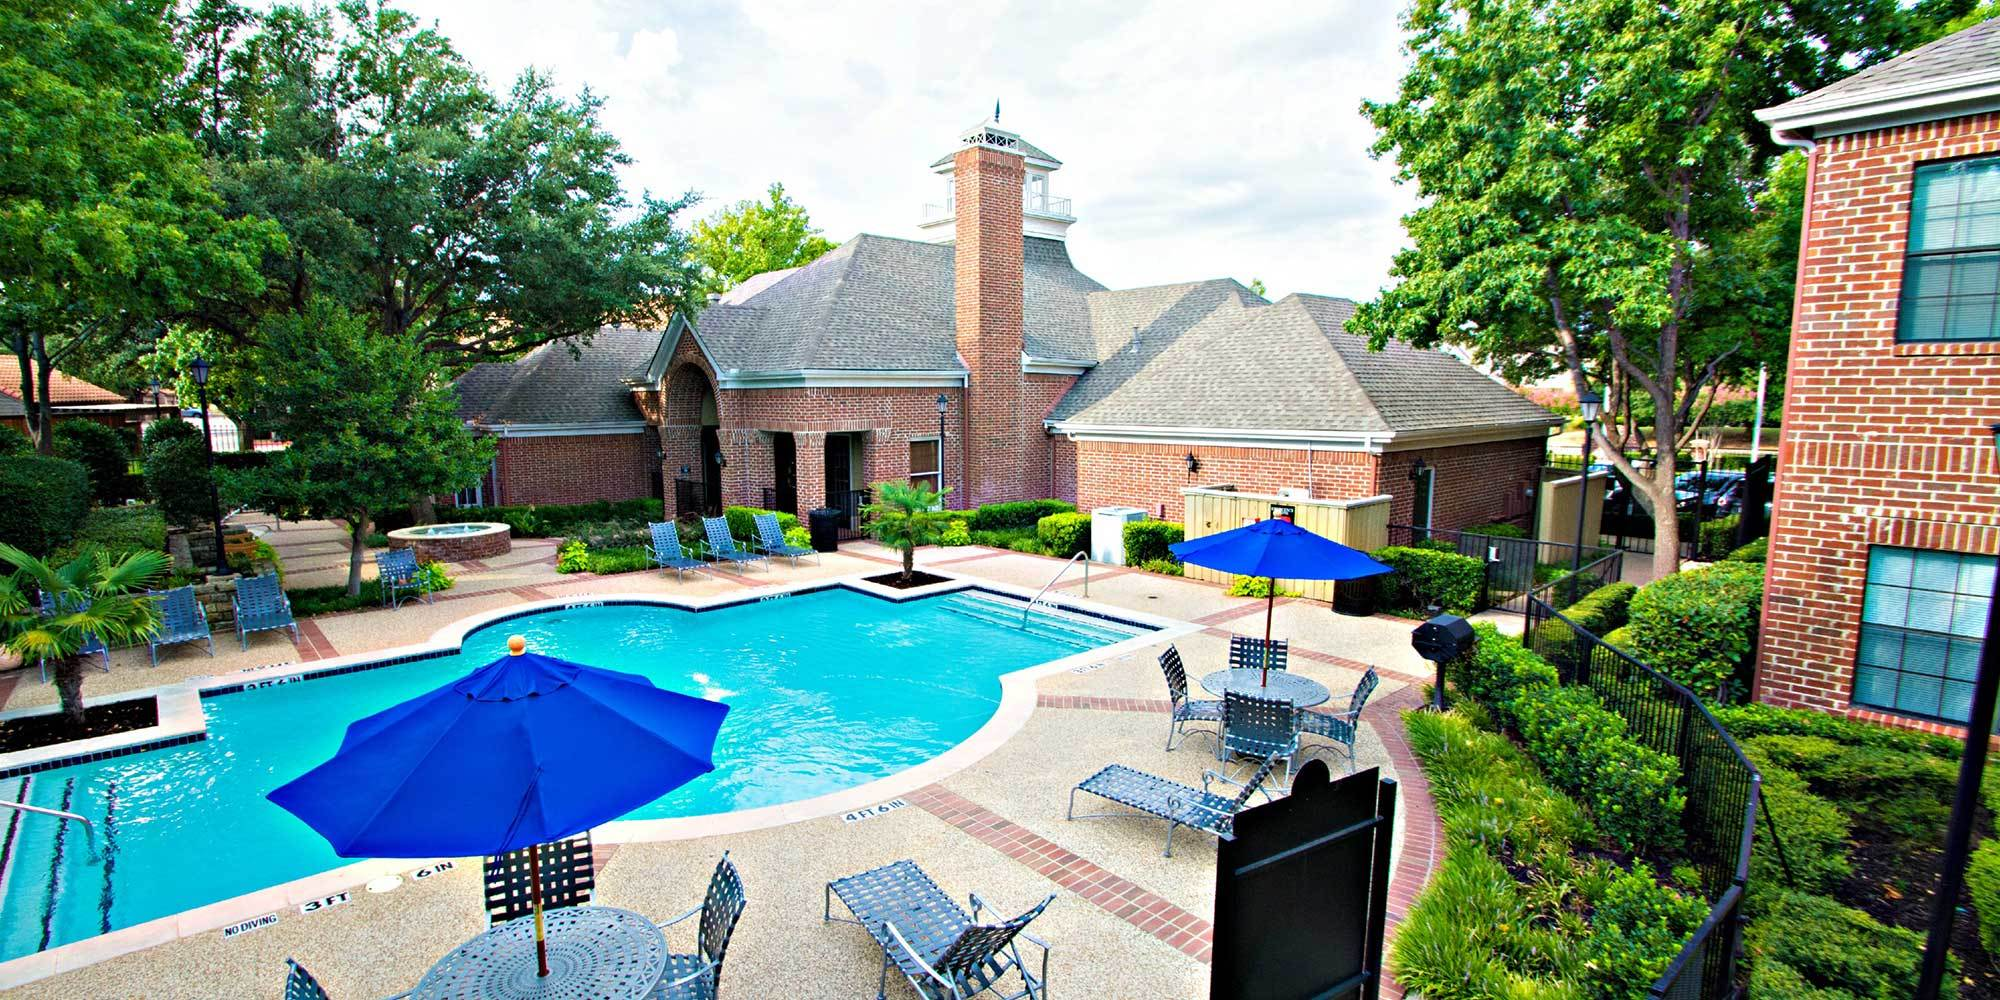 Richardson apartments for rent have a spacious pool area for you